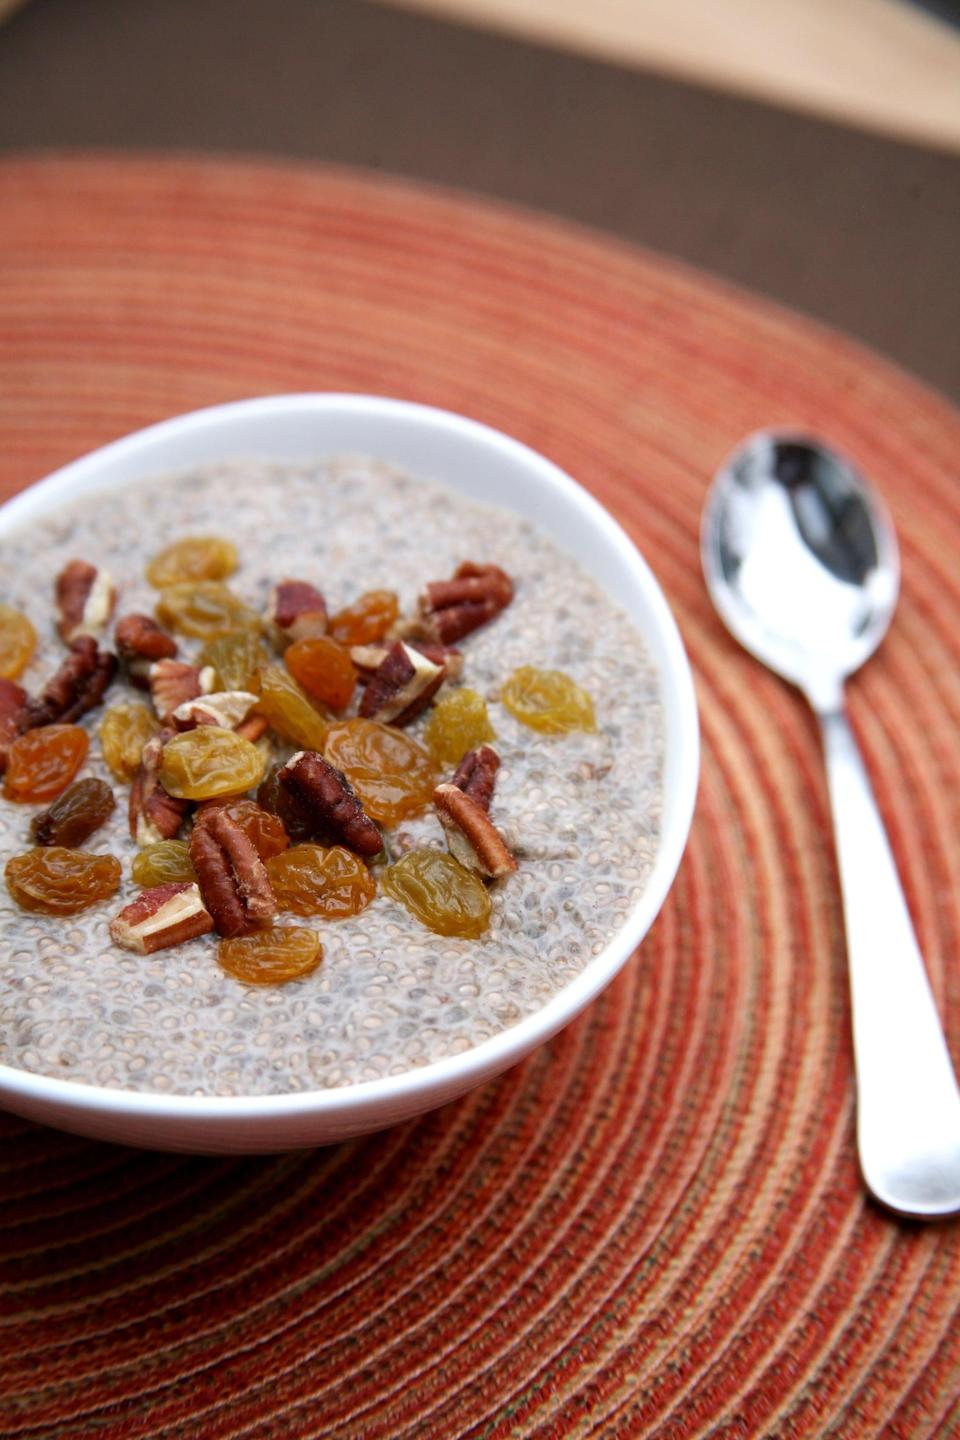 """<p>This breakfast will satisfy your cravings for sweetly spiced desserts, but it's healthy enough for breakfast.</p> <p><strong>Get the recipe:</strong> <a href=""""https://www.popsugar.com/fitness/Gingerbread-Chia-Pudding-39396728"""" class=""""link rapid-noclick-resp"""" rel=""""nofollow noopener"""" target=""""_blank"""" data-ylk=""""slk:bowl of chia pudding"""">bowl of chia pudding</a></p>"""